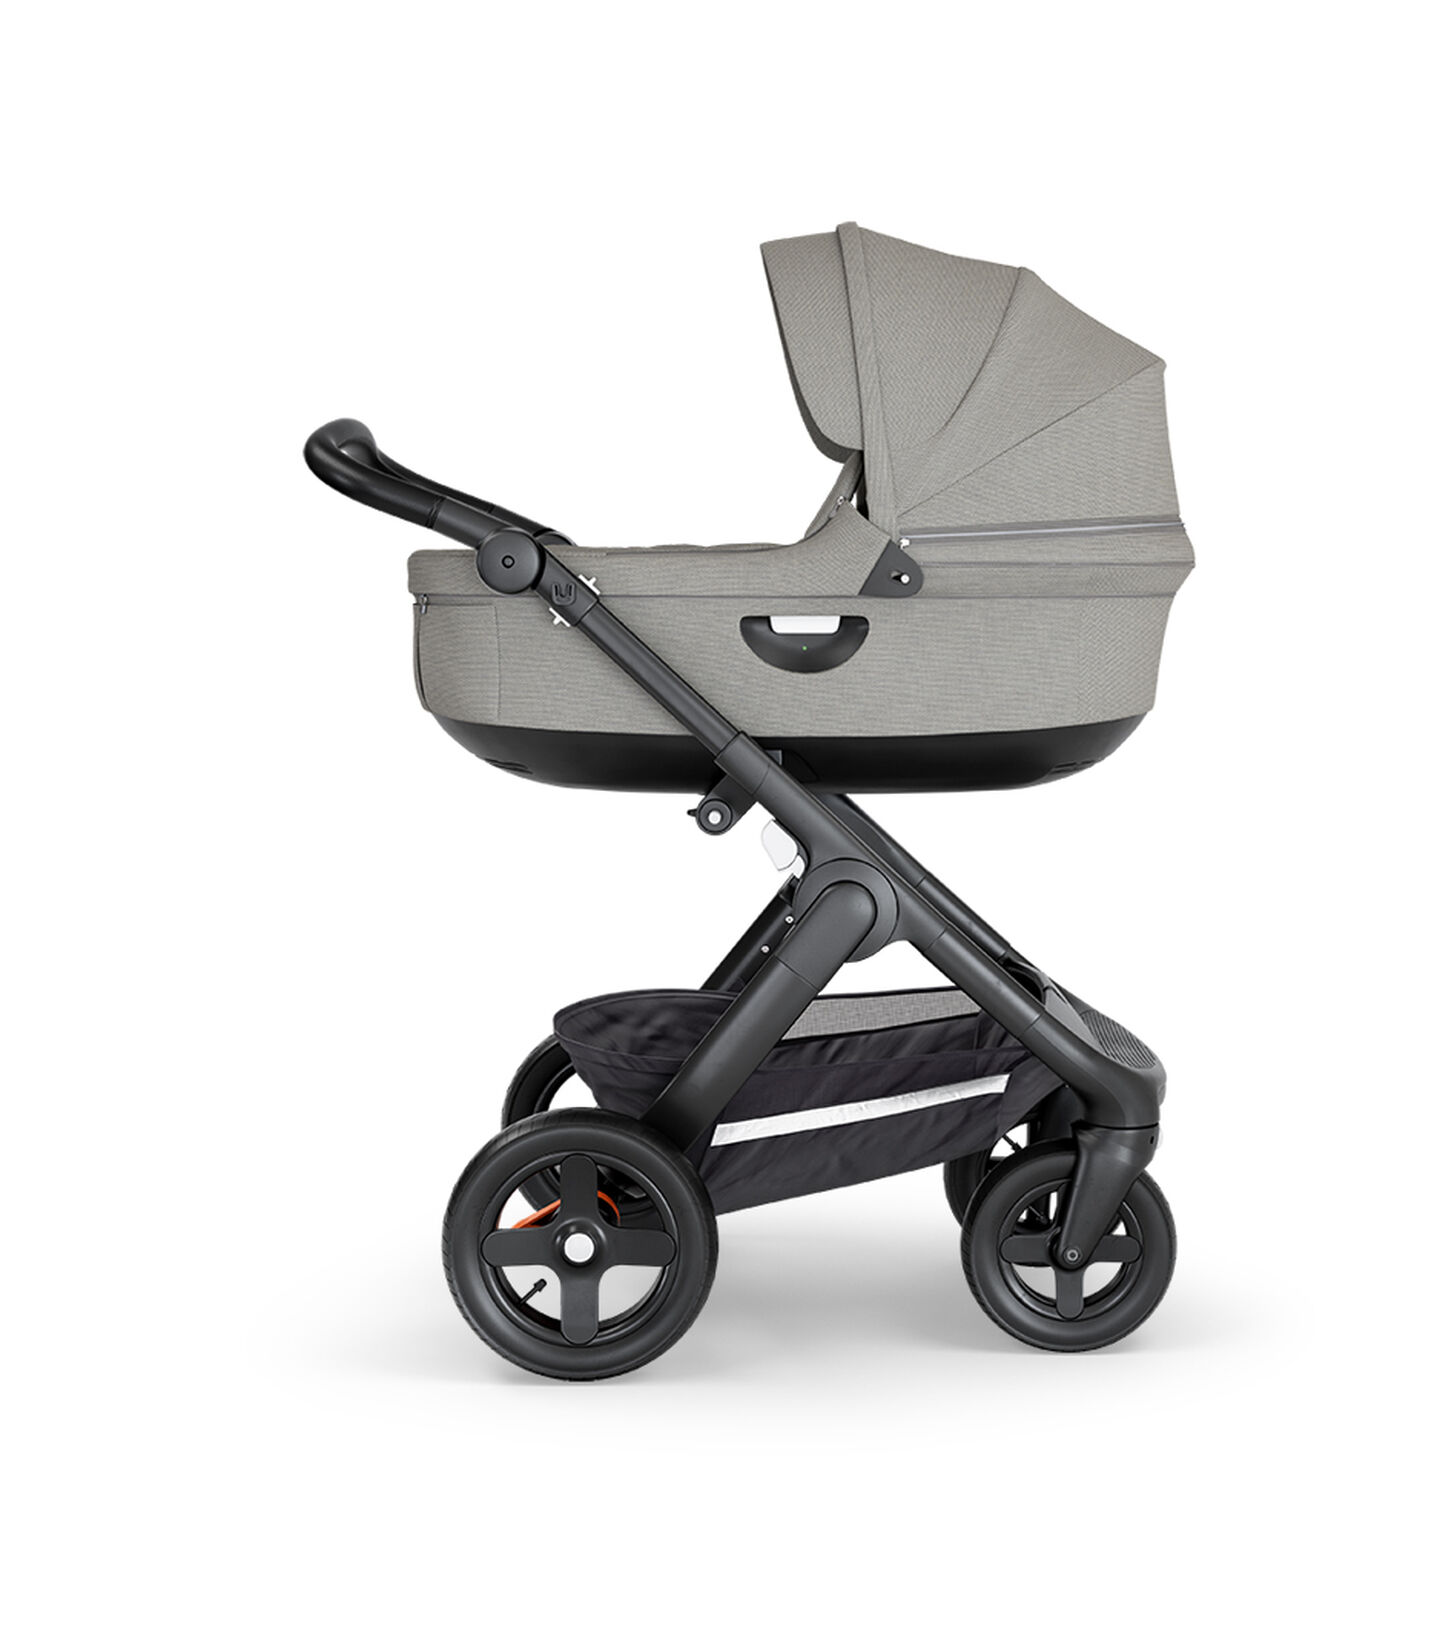 Stokke® Trailz™ with Black Chassis, Black Leatherette and Terrain Wheels. Stokke® Stroller Carry Cot, Brushed Grey.